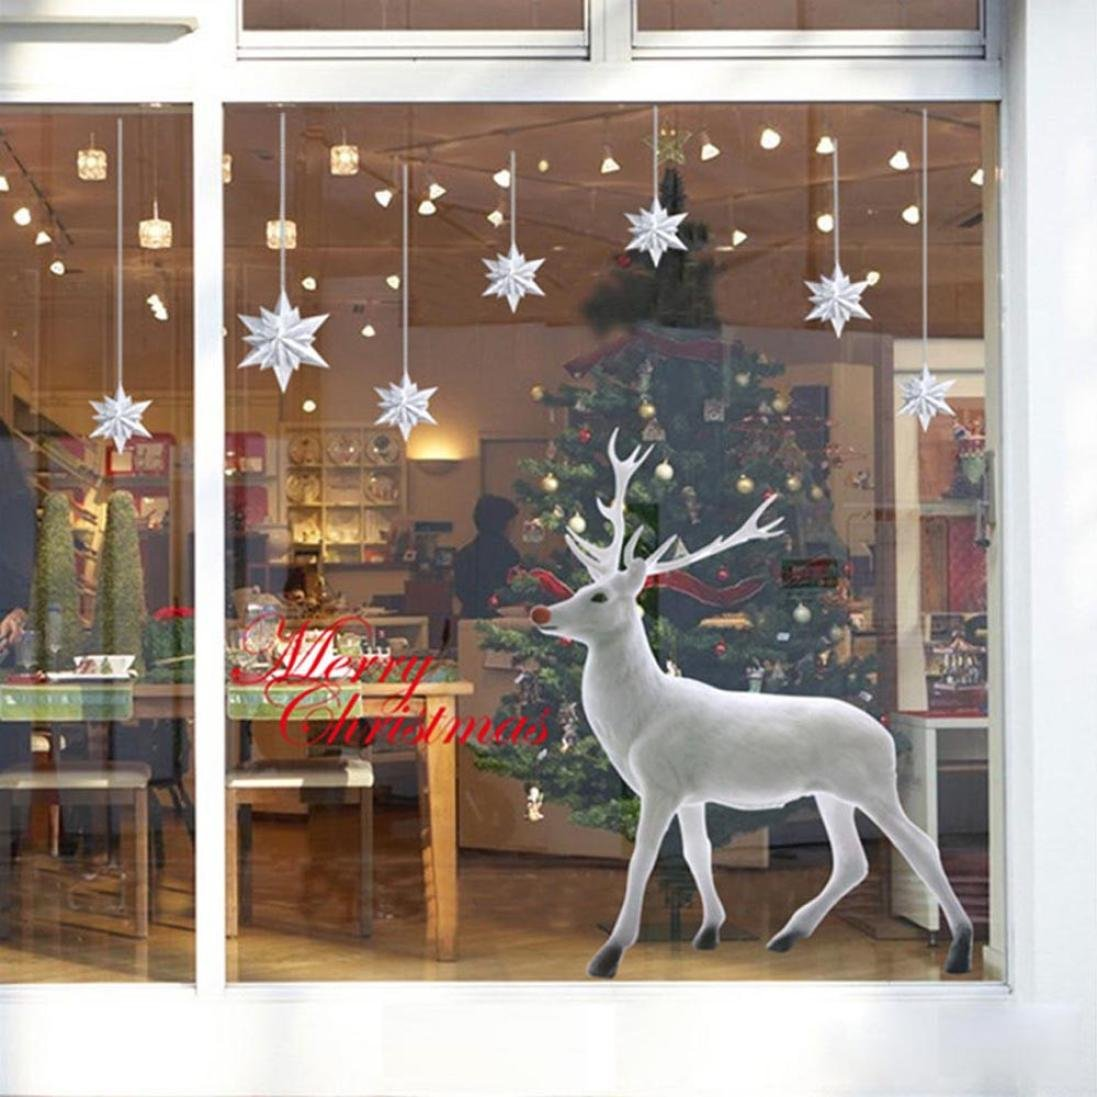 Christmas Wall Stickers, Lovely White Christmas Deer Removable Wall Window Sticker Art Home Decor Decal (C) MML